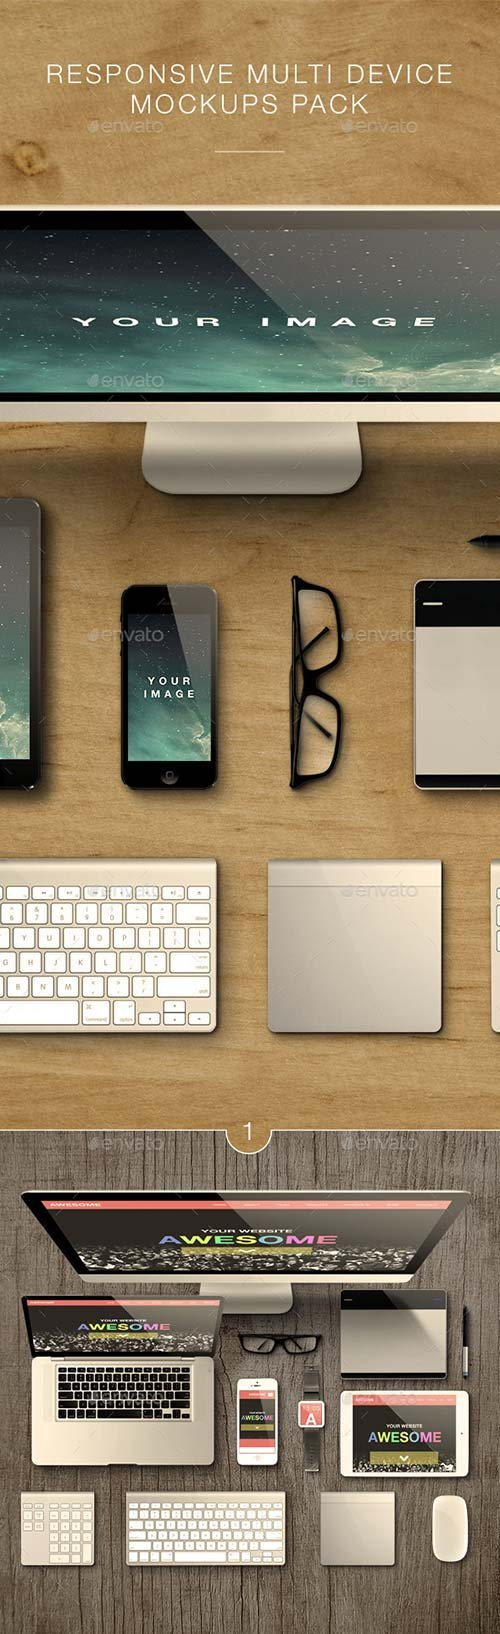 GraphicRiver Responsive Multi Device Mockups Pack